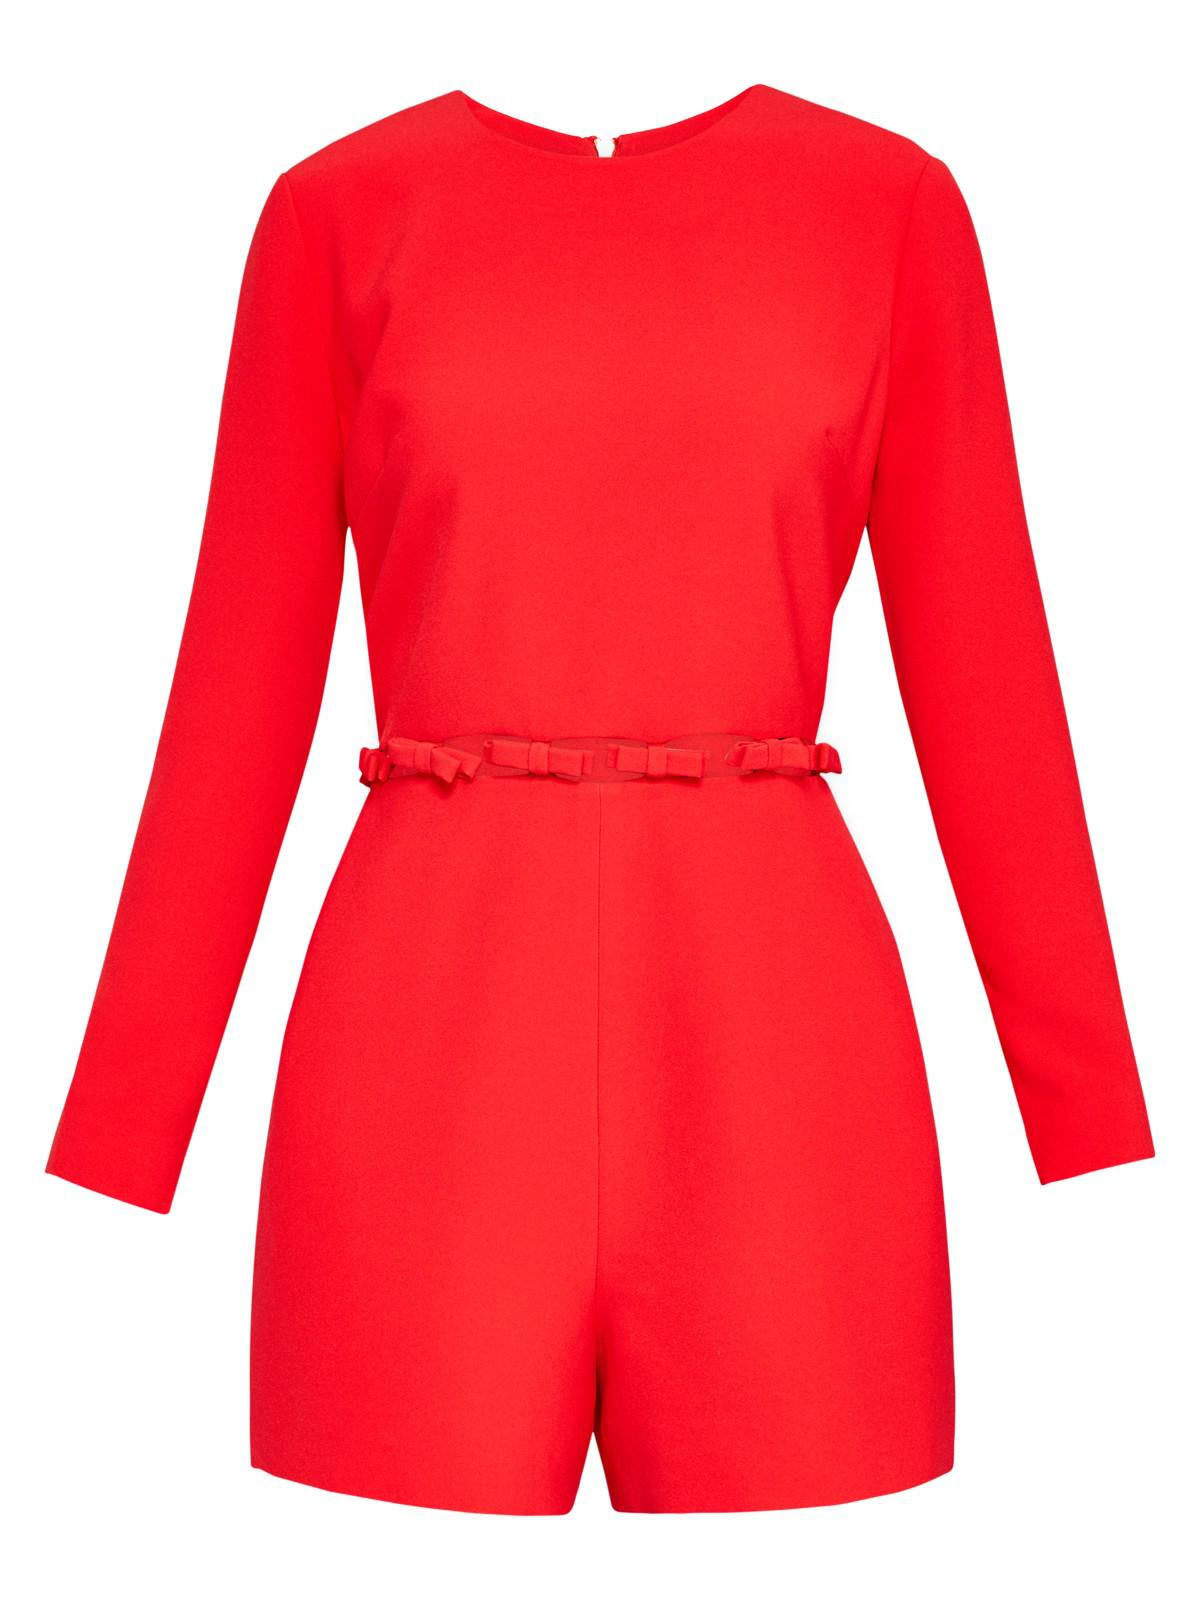 05b721de6f53 Ted Baker Tanzii Cut Out Waist Playsuit in Red - Lyst